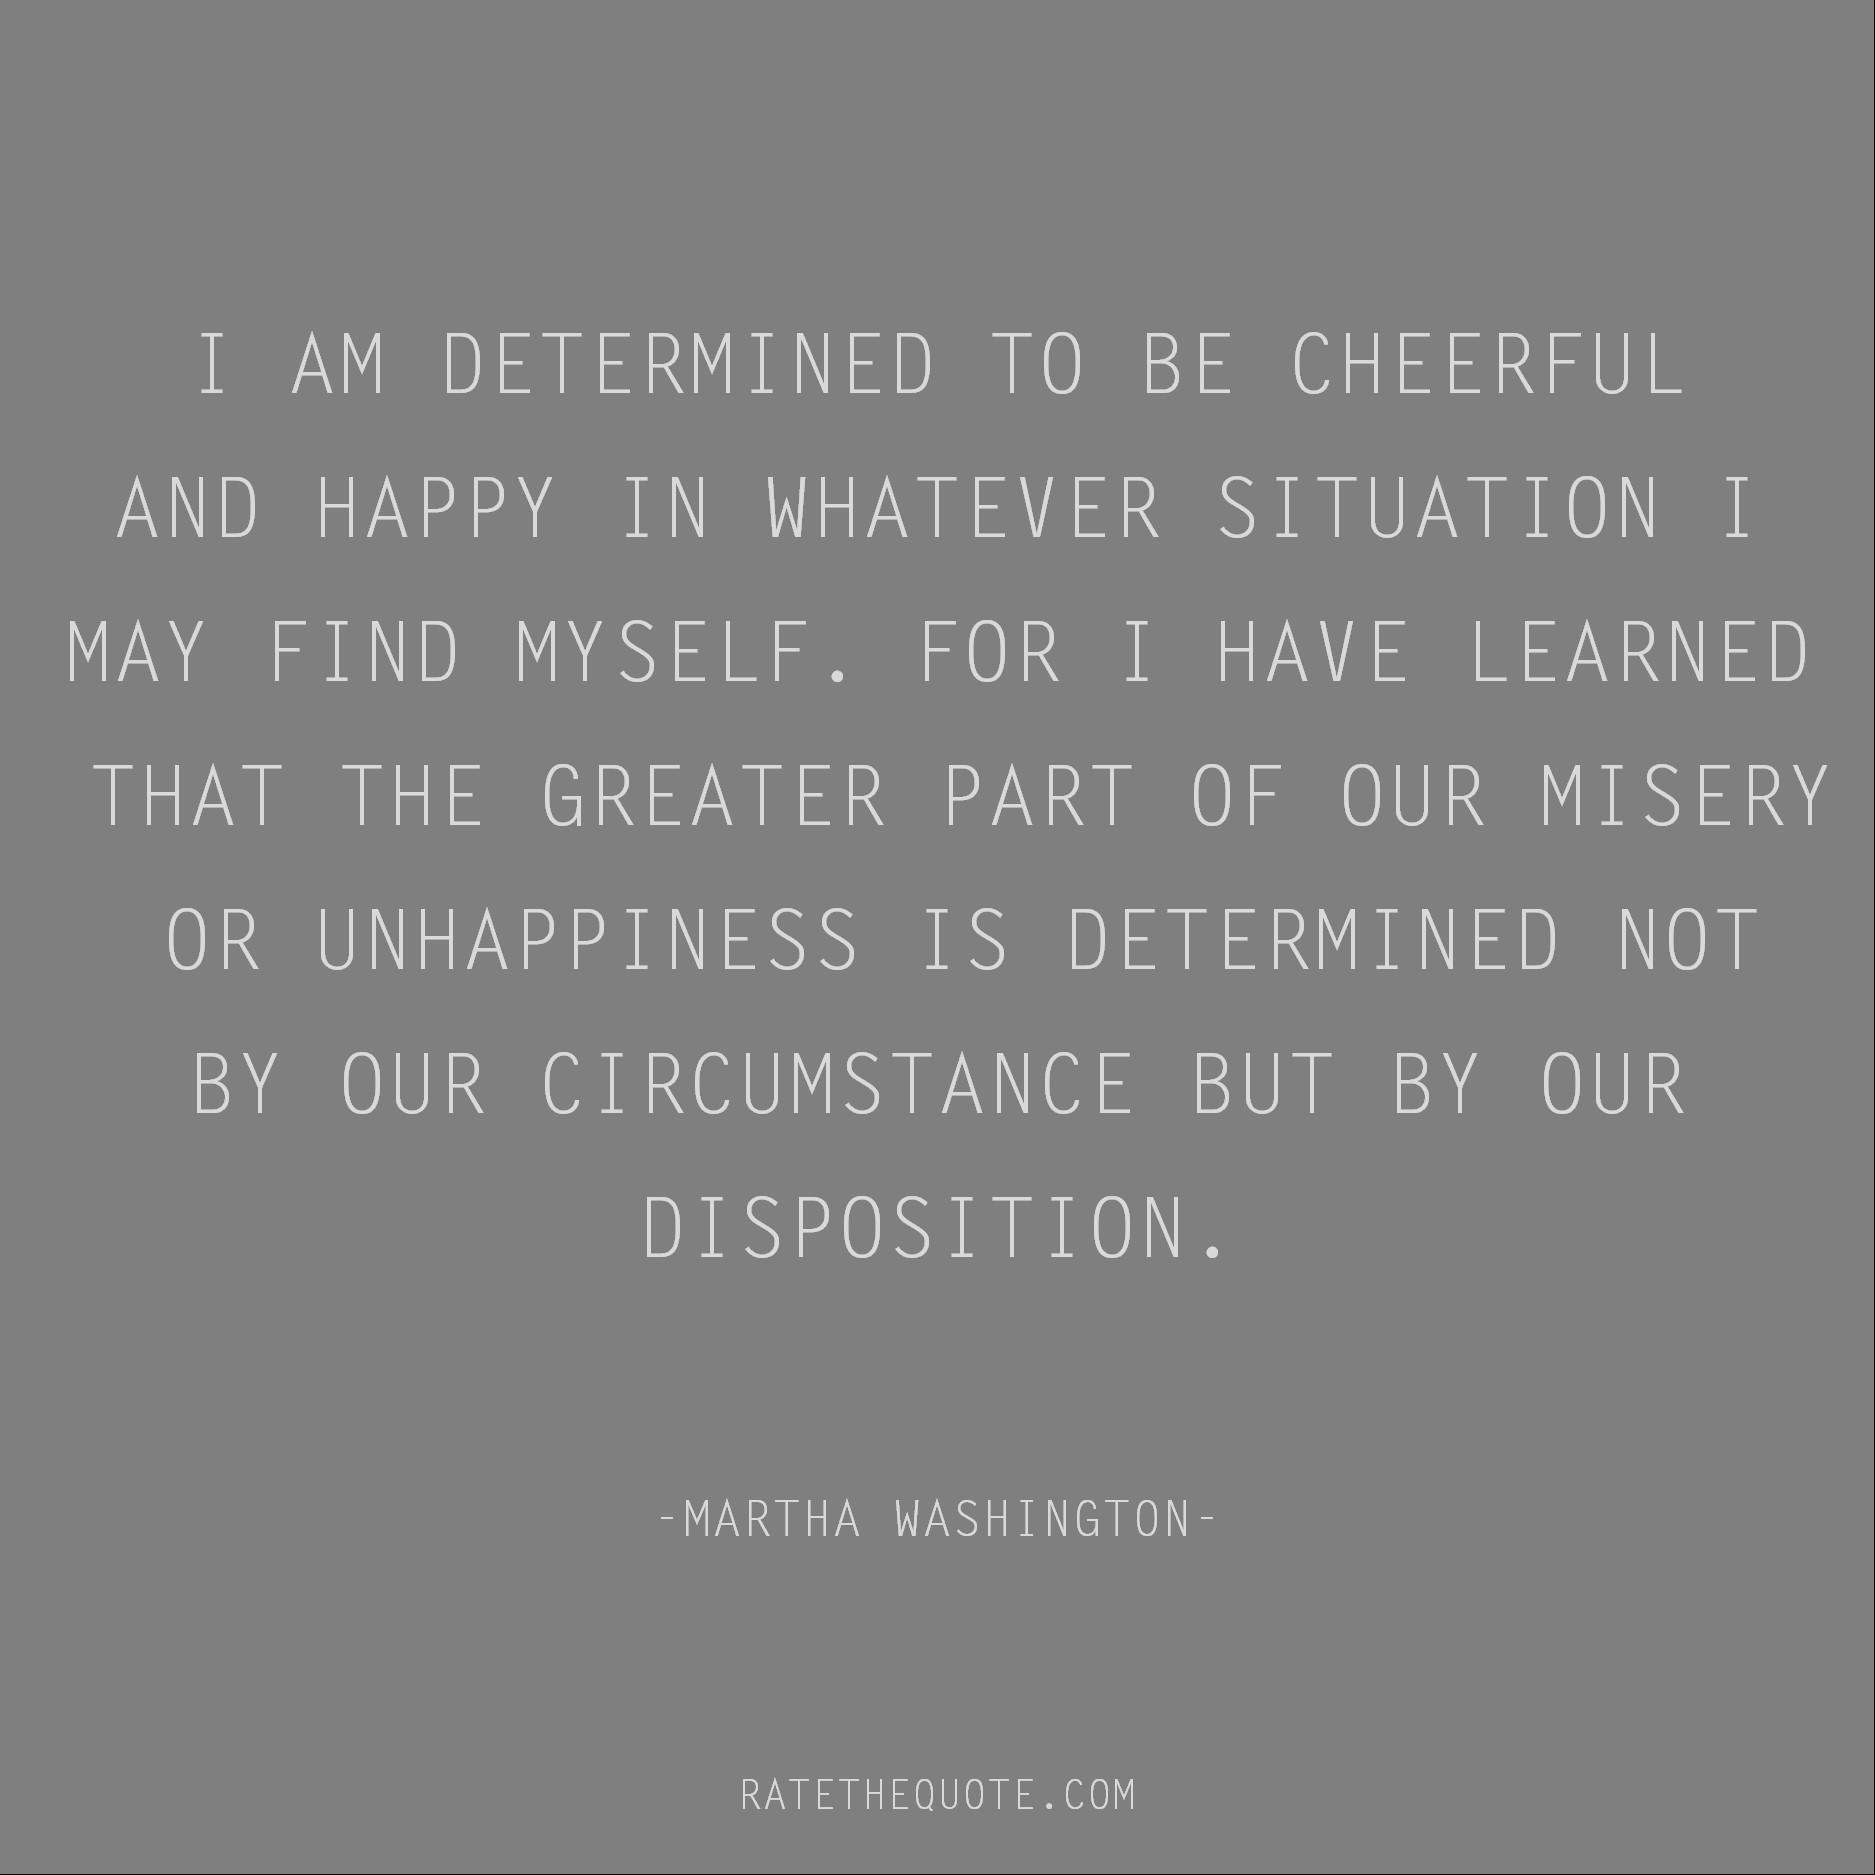 Happiness Quotes I am determined to be cheerful and happy in whatever situation I may find myself. For I have learned that the greater part of our misery or unhappiness is determined not by our circumstance but by our disposition. Martha Washington